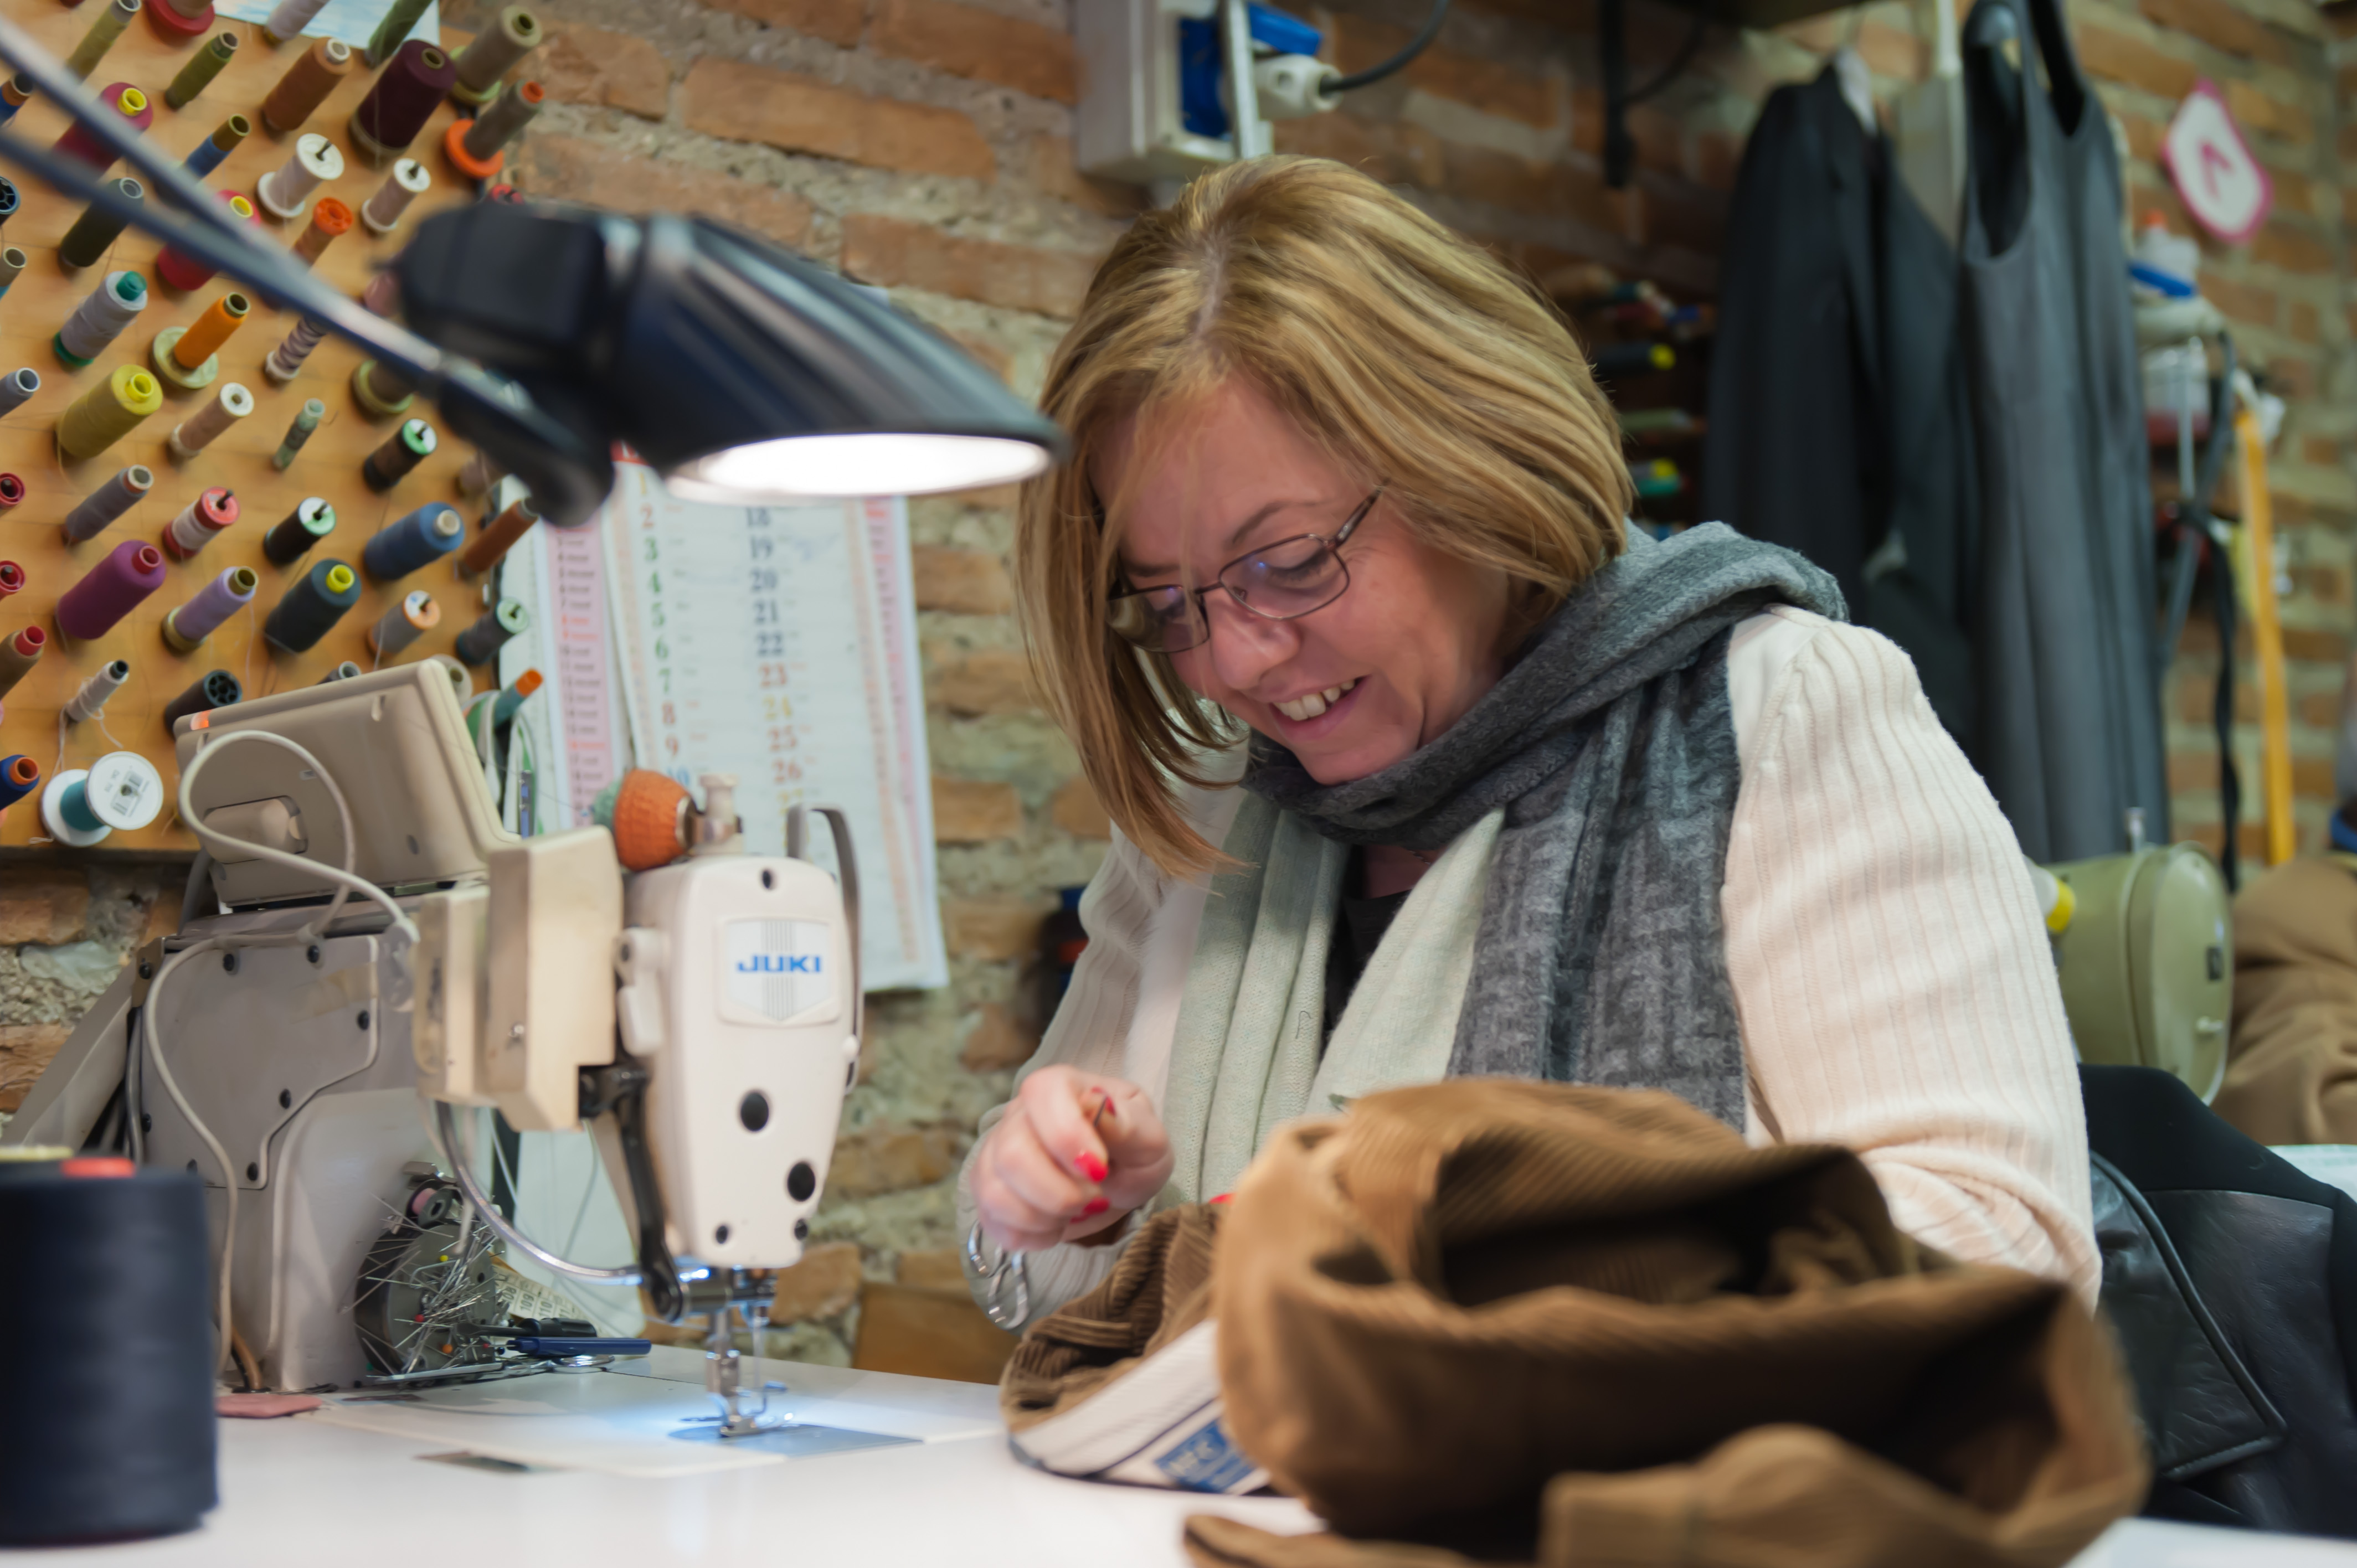 Caption: Artisans such as tailor Paola Gueli&lt;br/&gt; have made Italy famous for&lt;br/&gt; its quality, handmade products&lt;br/&gt; but they are a disappearing breed., Credit: Luigi Fraboni